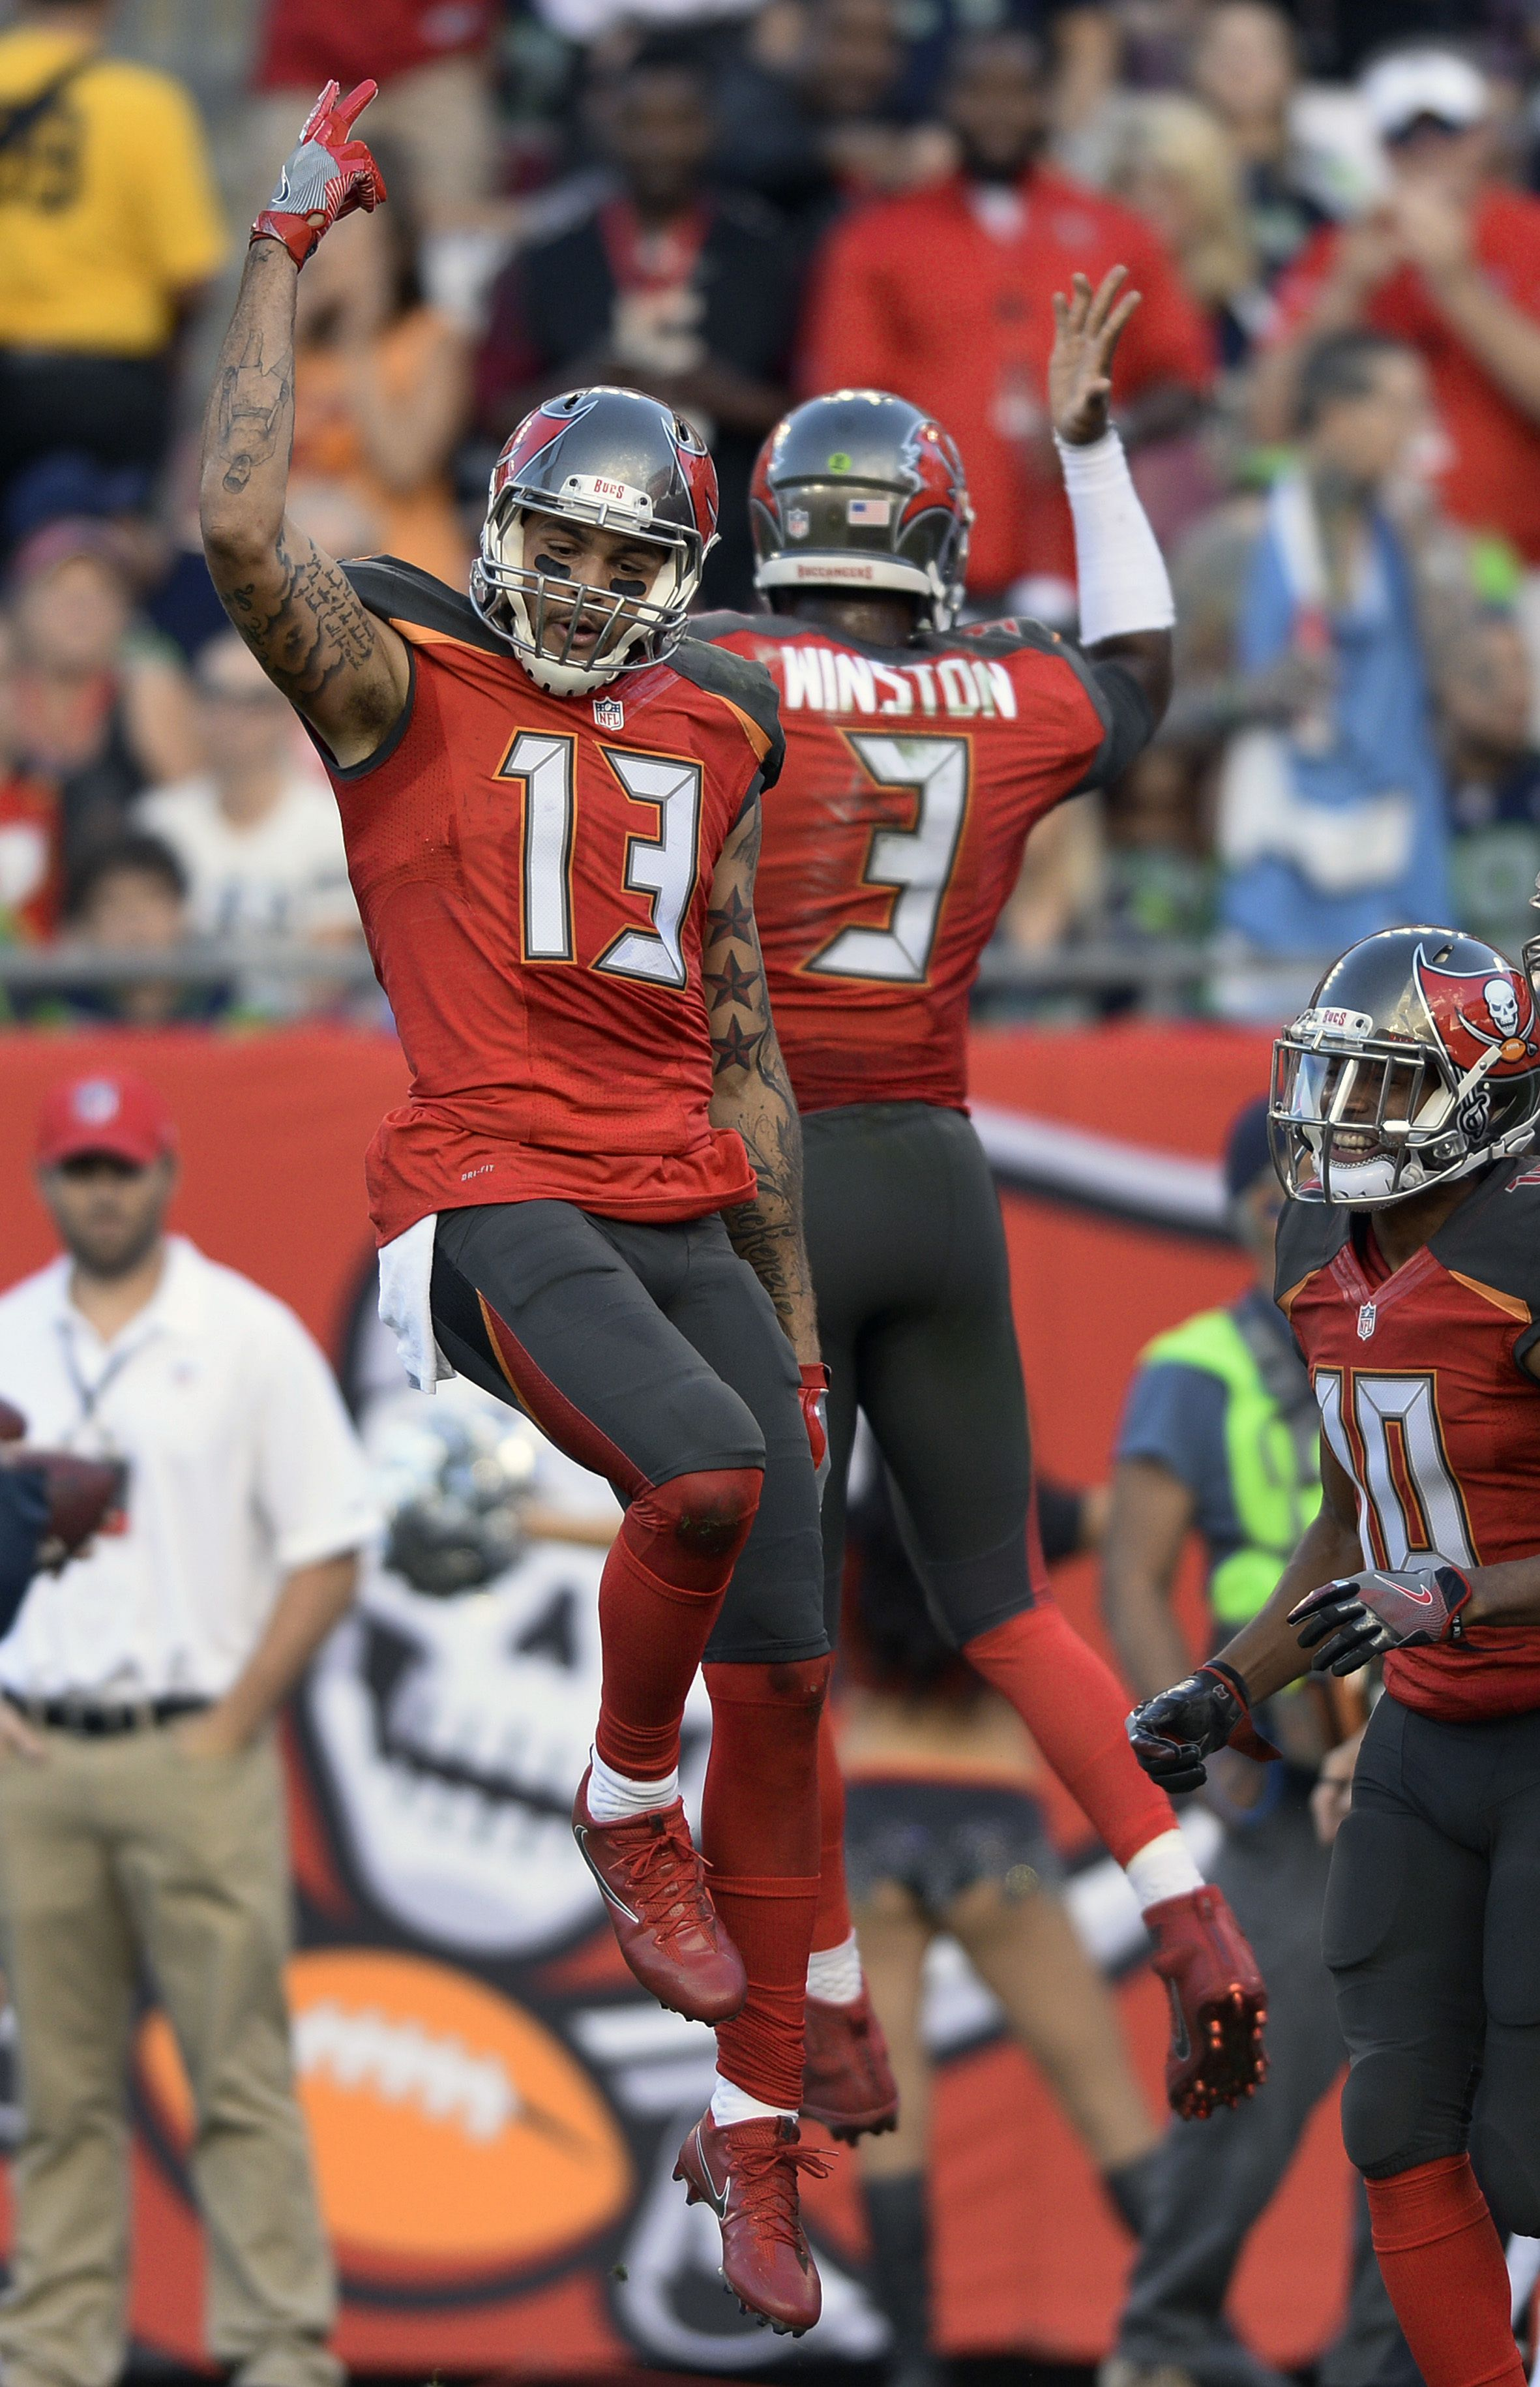 Tampa Bay Buccaneers Wr Qb Combo Mike Evans And Jameis Winston Don T Just Have Perfect Sync On Pas Tampa Bay Buccaneers Football Buccaneers Football Buccaneers